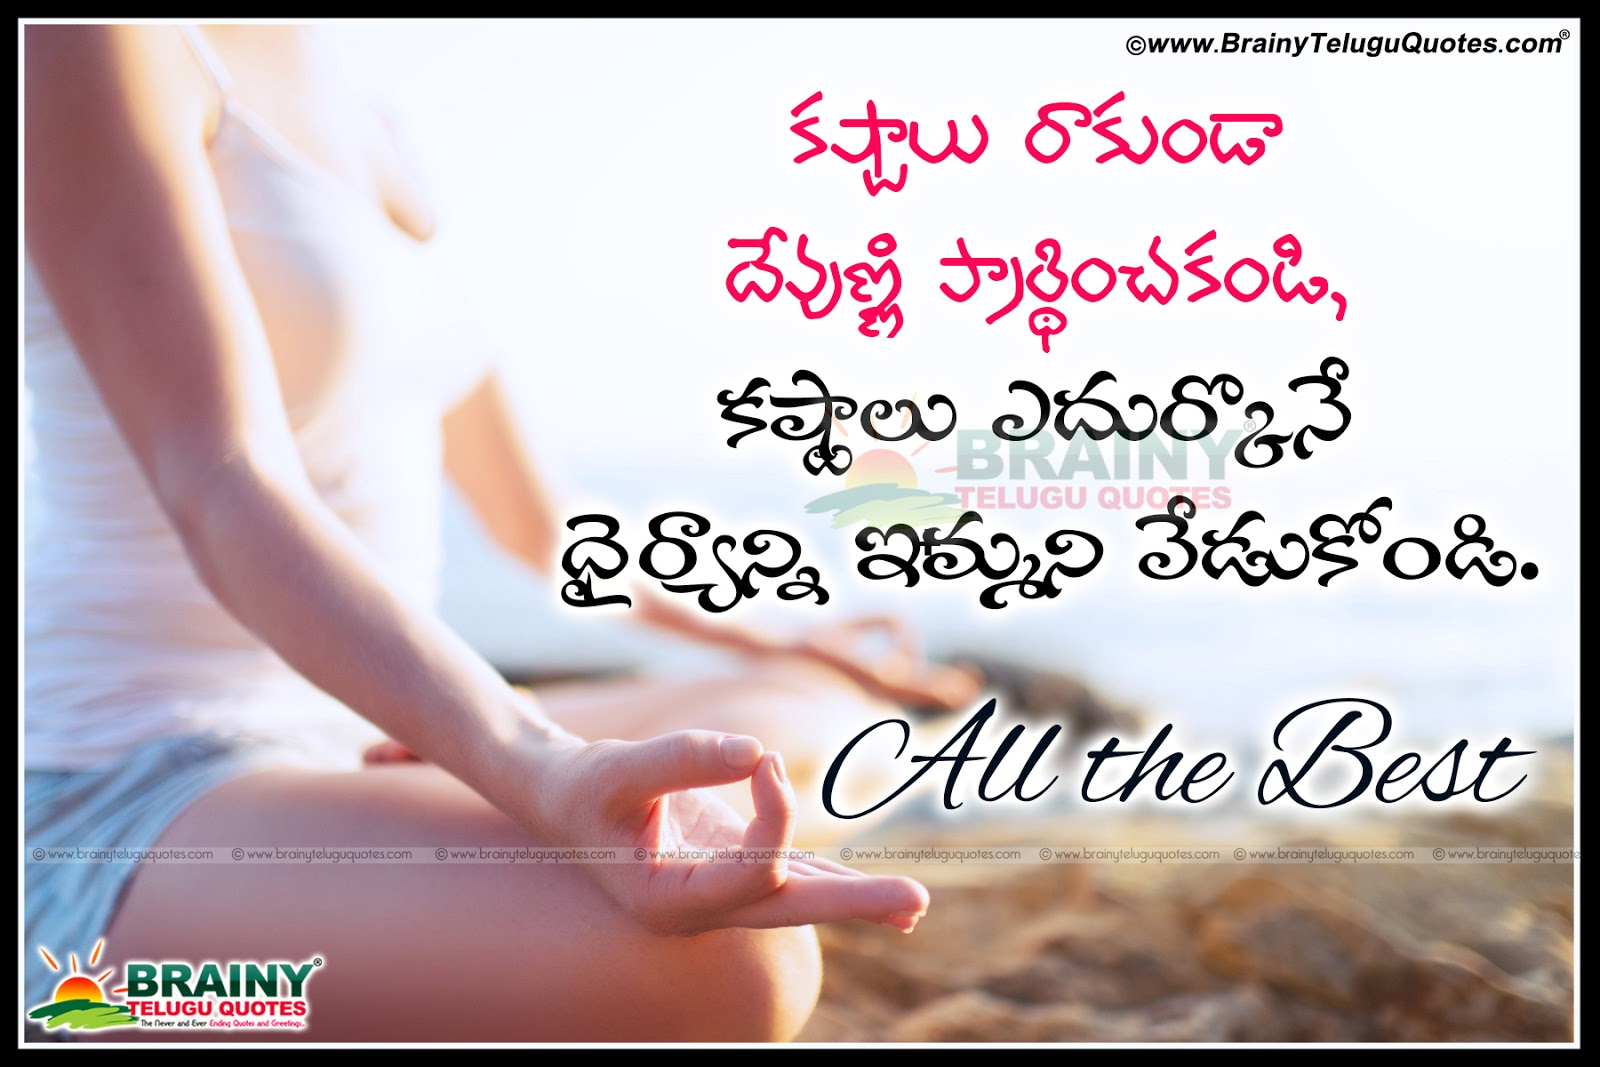 Best Quote About Life Life Success And Failure Inspirational Telugu All The Best Life